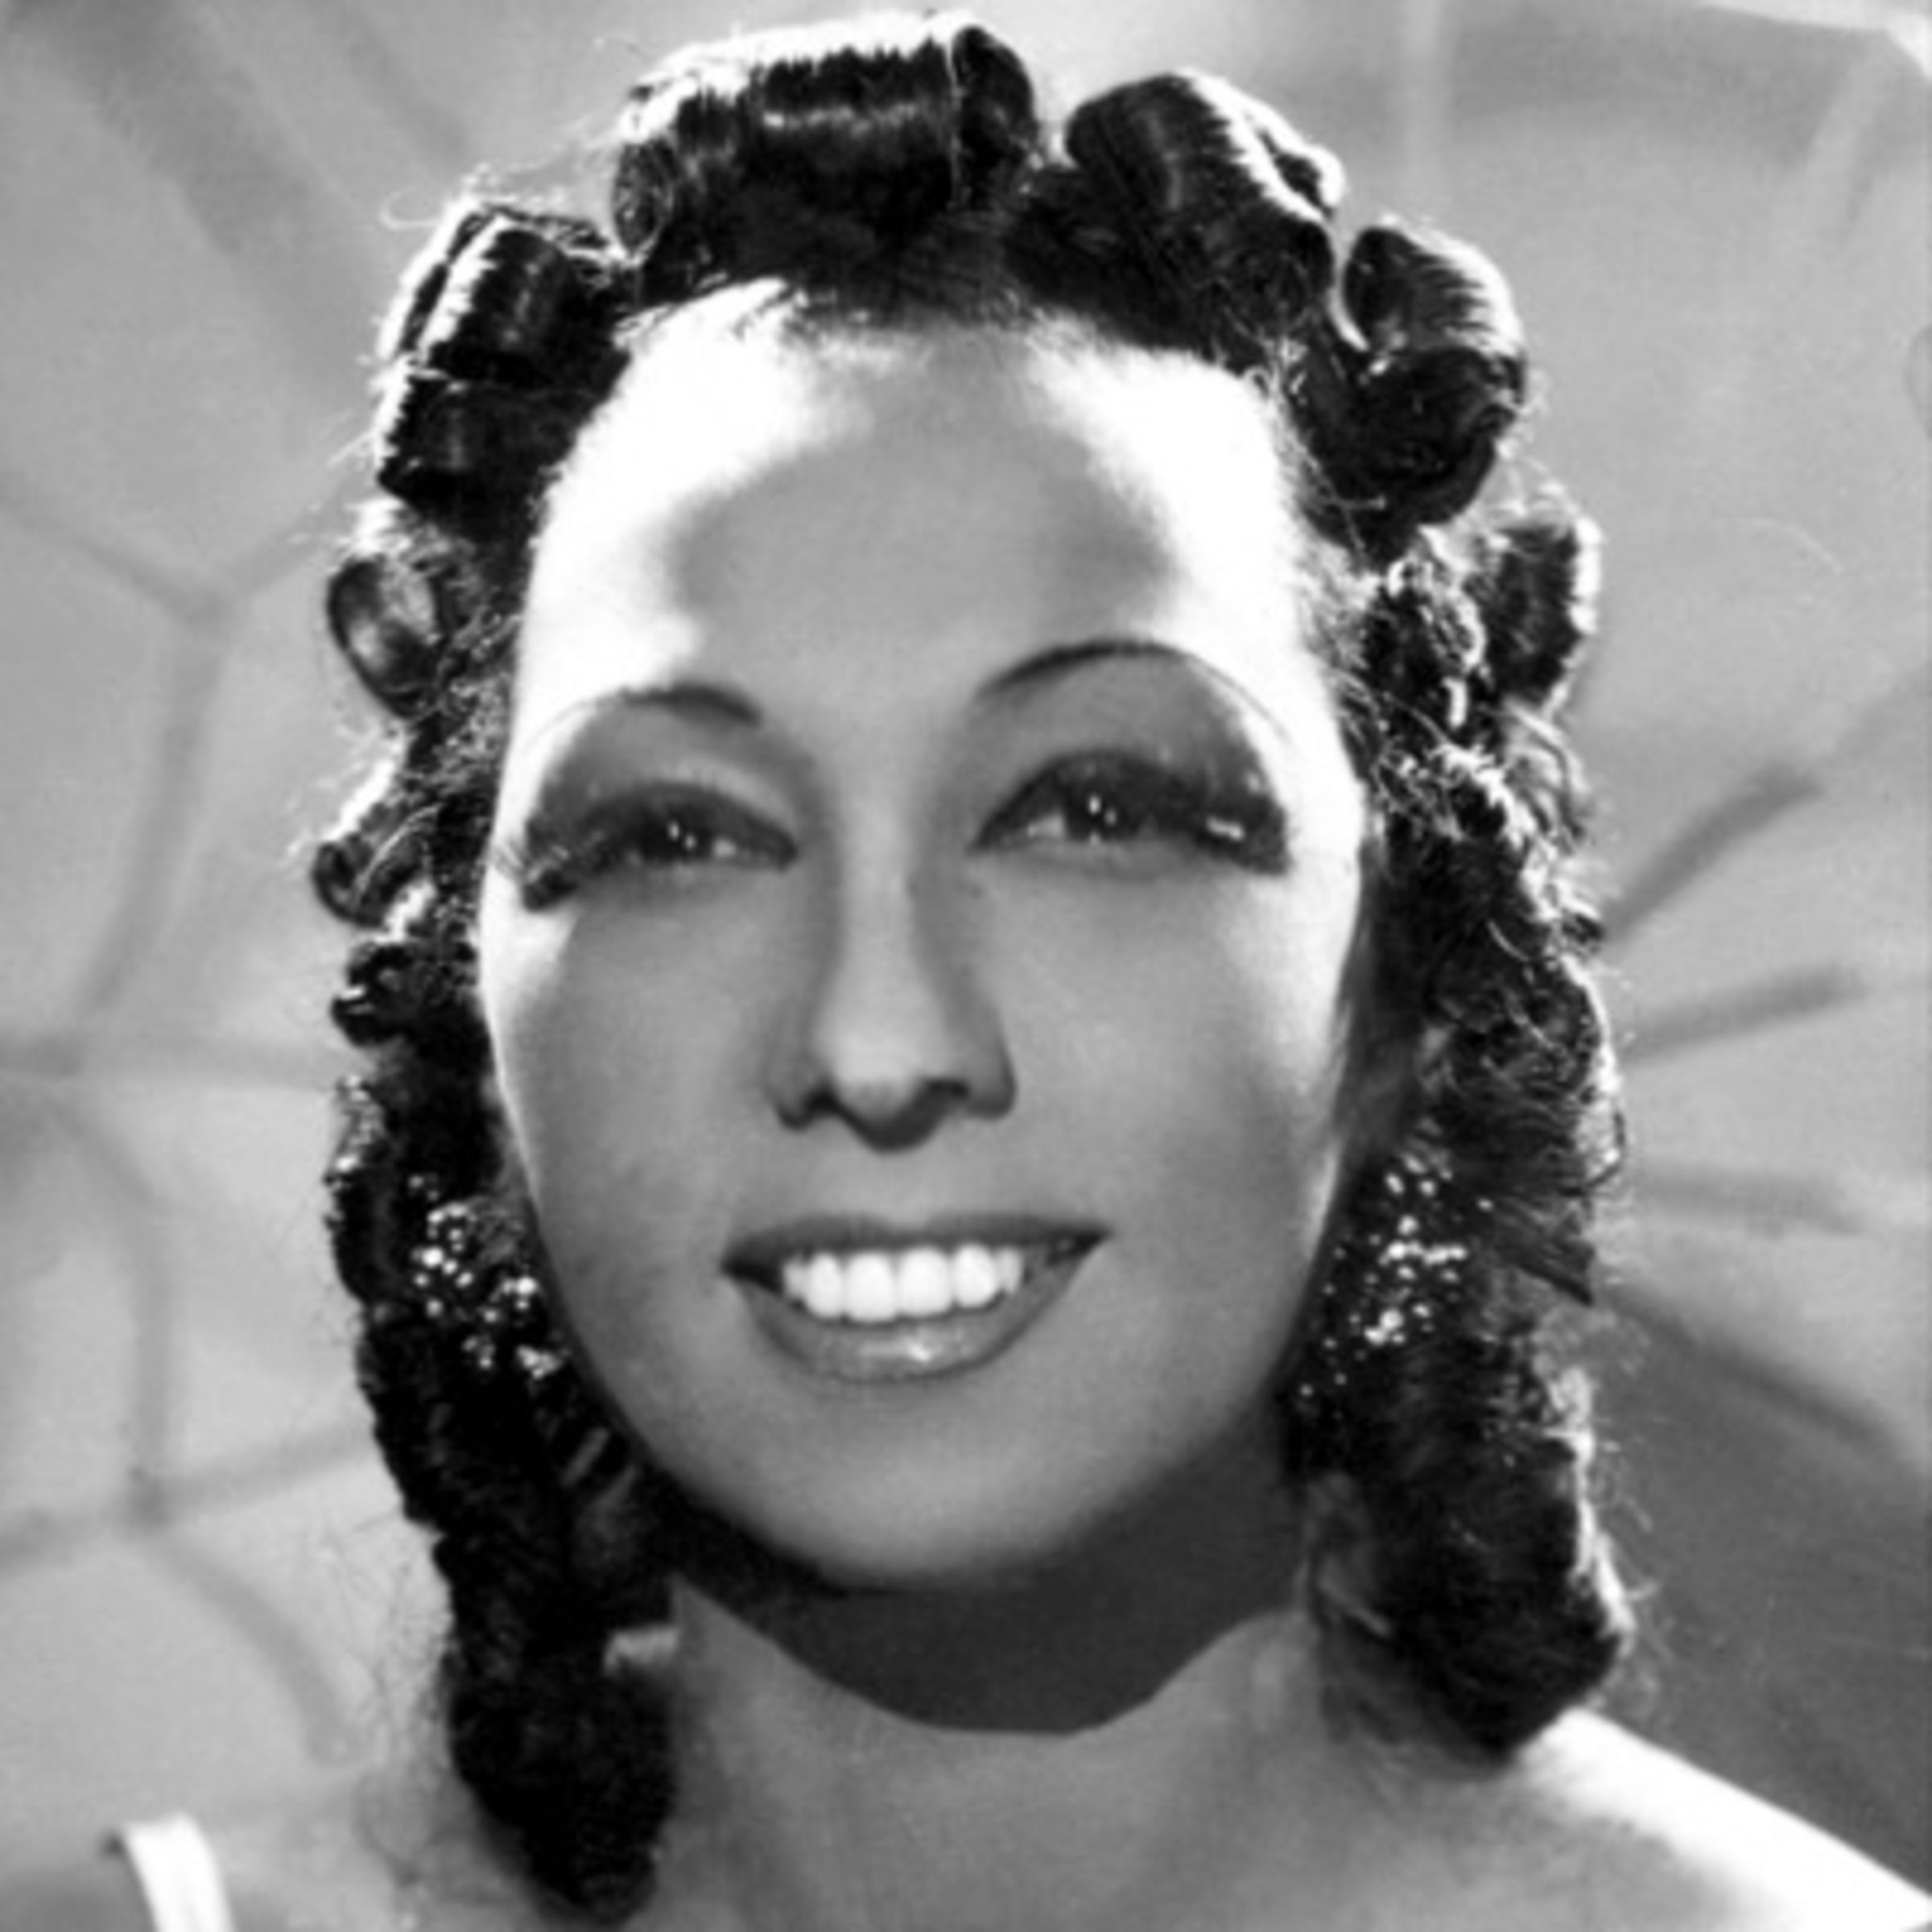 Biography.com presents the life of jazz entertainer Josephine Baker, who dazzled audiences from Harlem's Cotton Club to Paris' <i>Folies Bergre</i>.